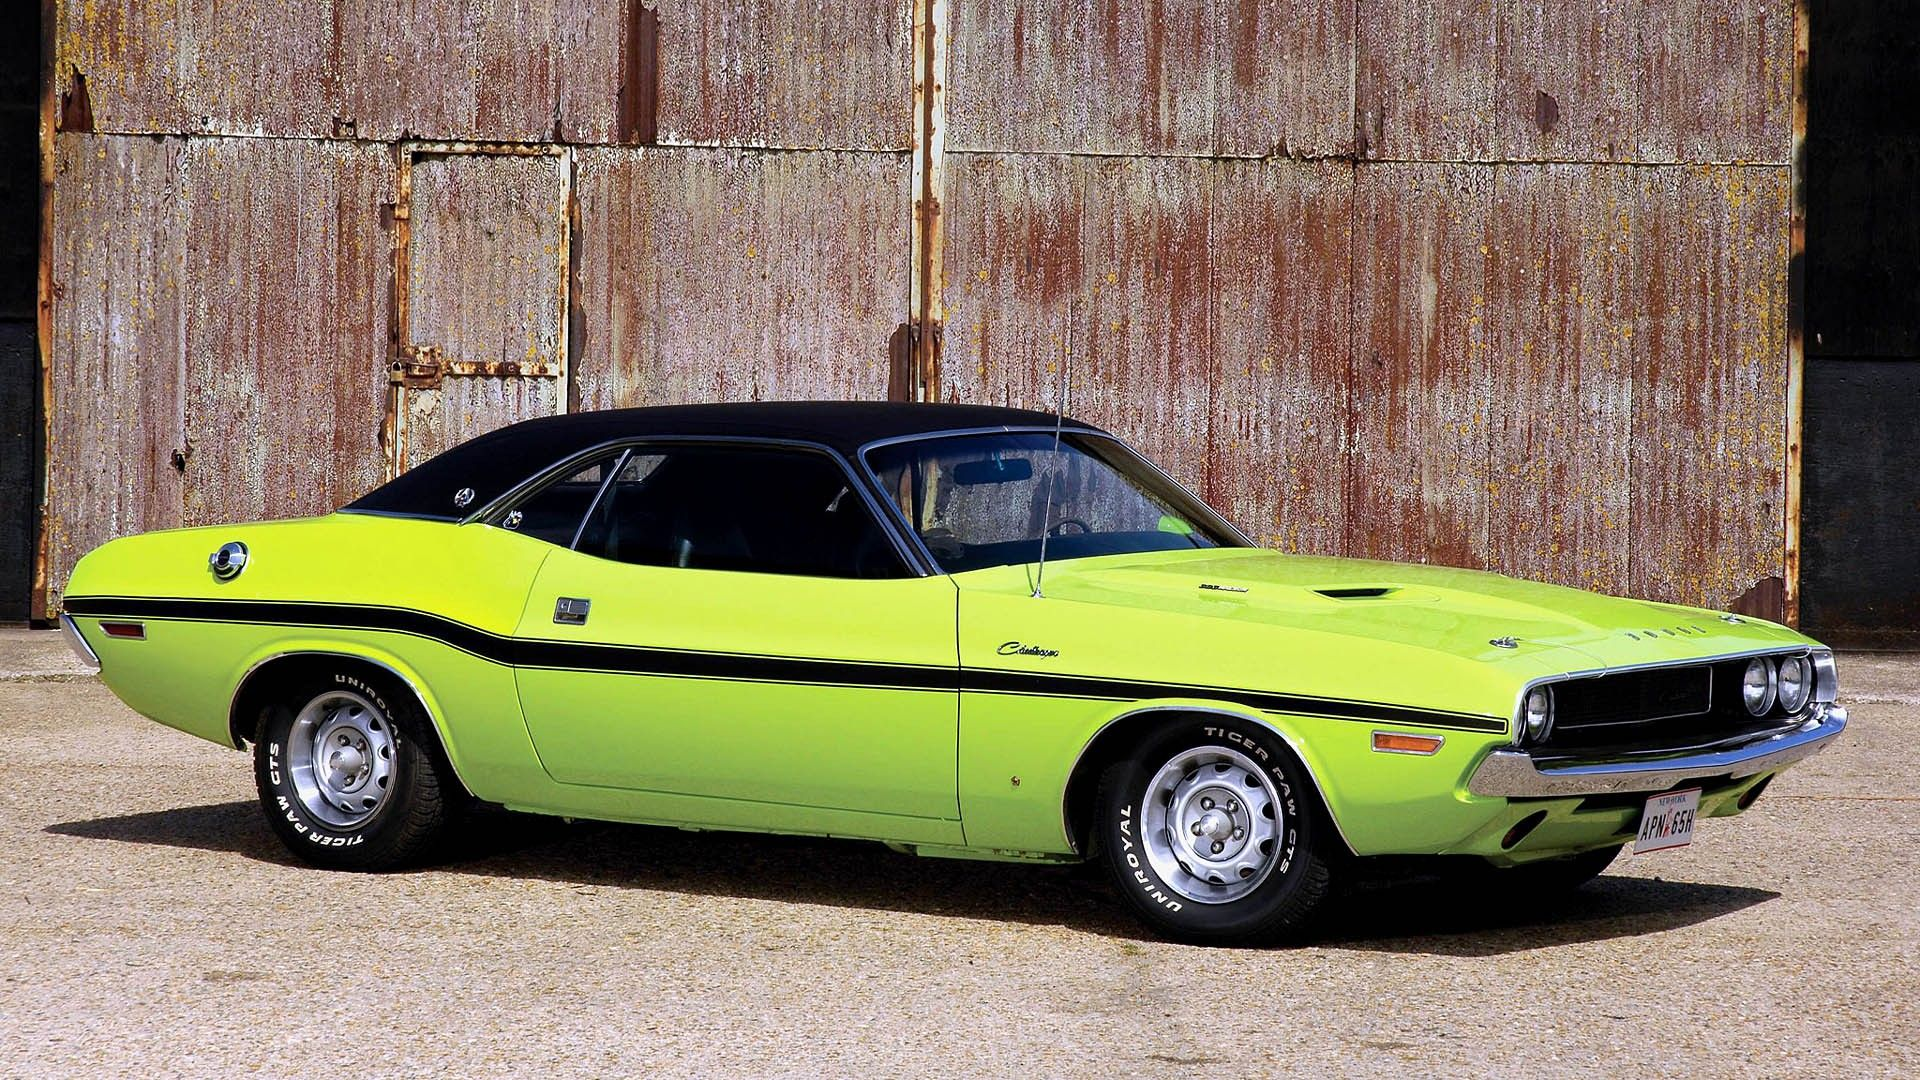 Dodge Challenger cars classic muscle vehicles wallpaper » Holy ...